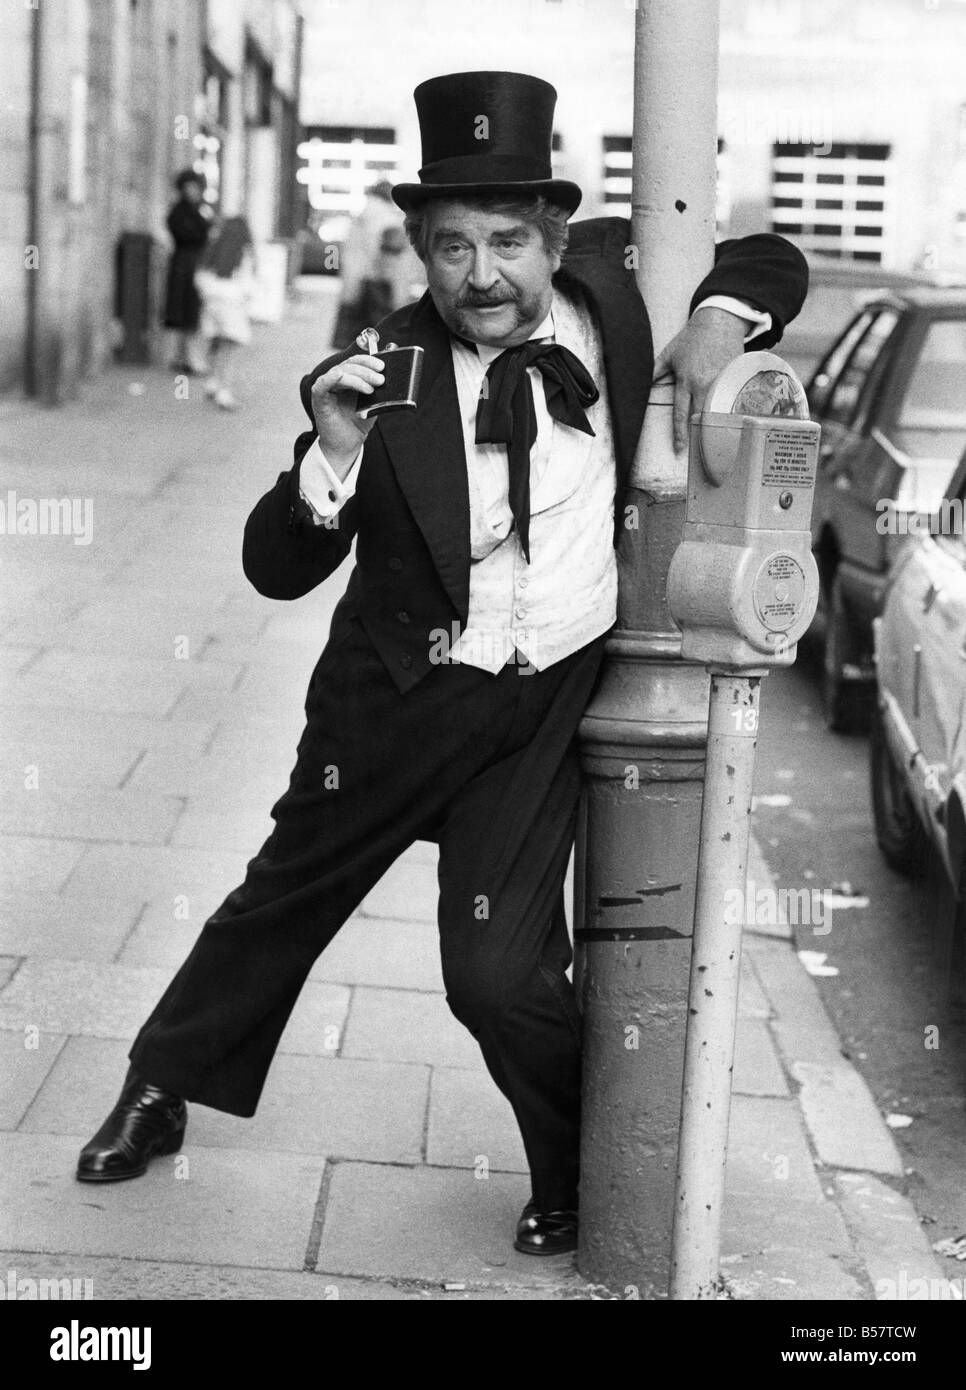 Former Coronation Street star Peter Adamson in his latest role. He plays Tommy Beamish, a music hall comedian, in - Stock Image